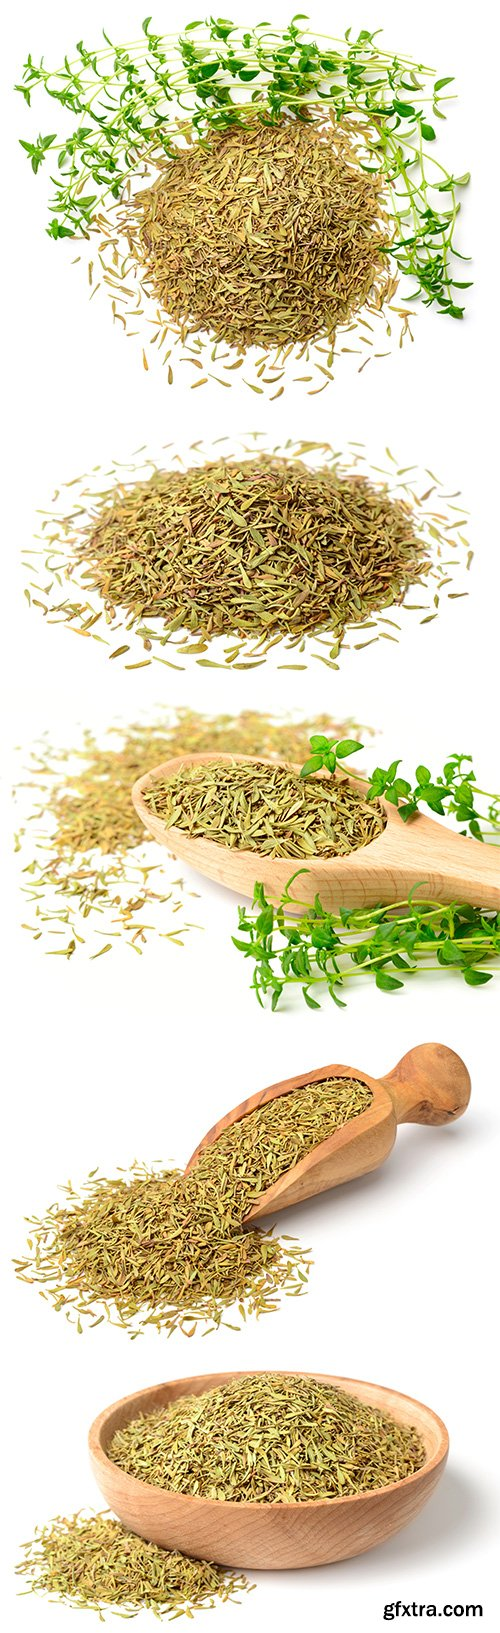 Dried Thyme Isolated - 5xJPGs